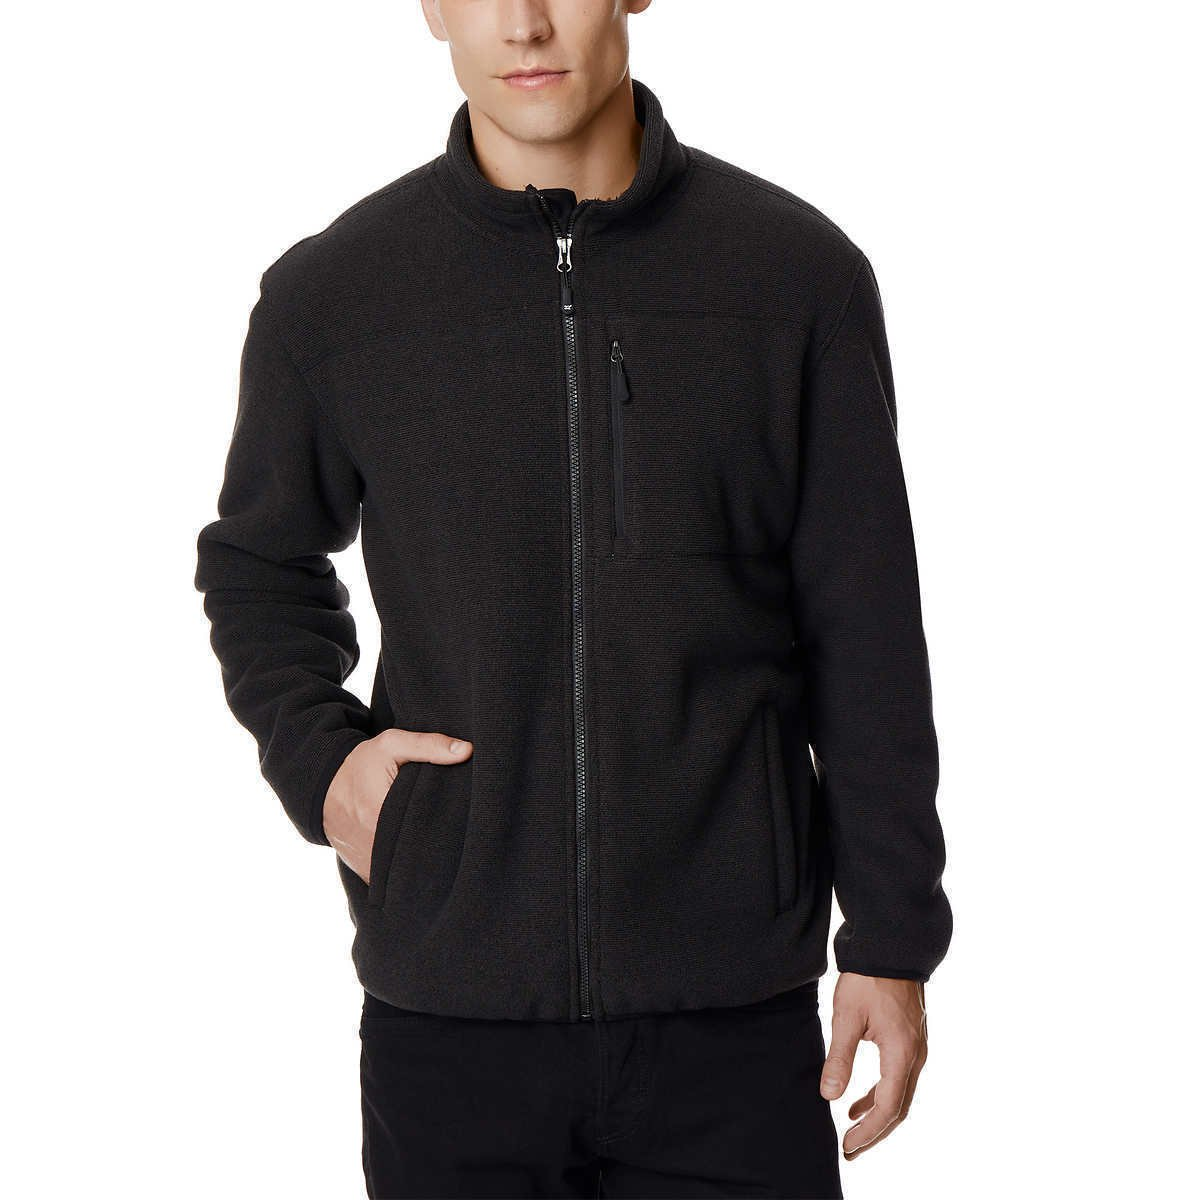 32 DEGREES Men's Fleece Sherpa Jacket (Black, X-Large) by 32 DEGREES